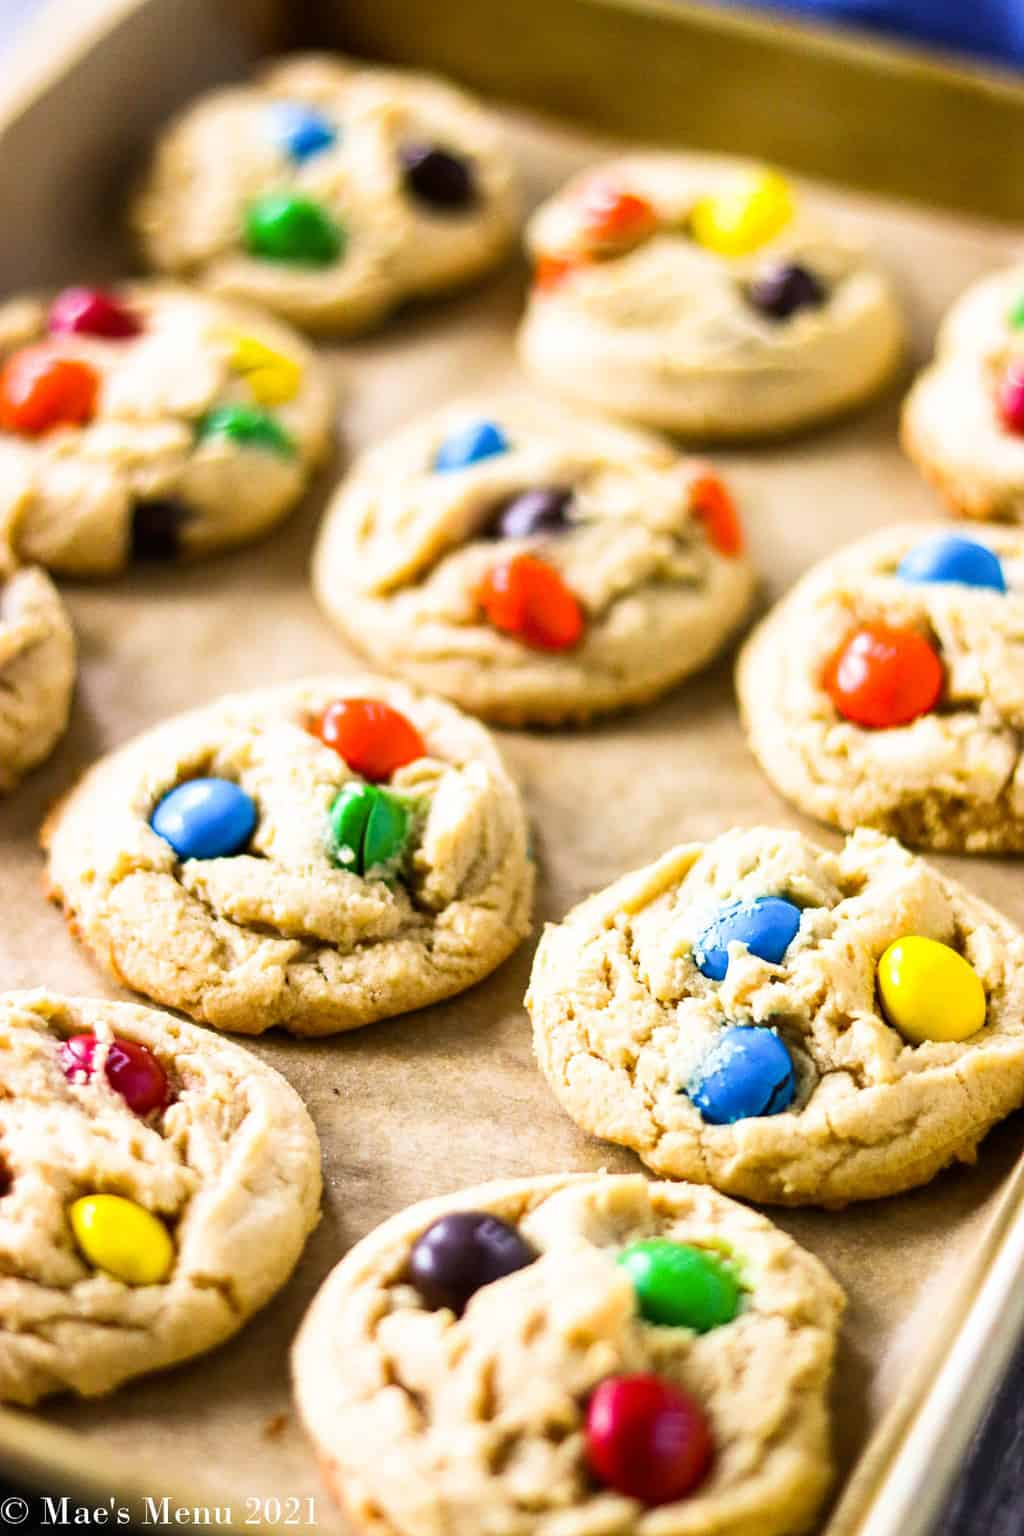 A side angled shot of a tray of peanut butter M&M cookies